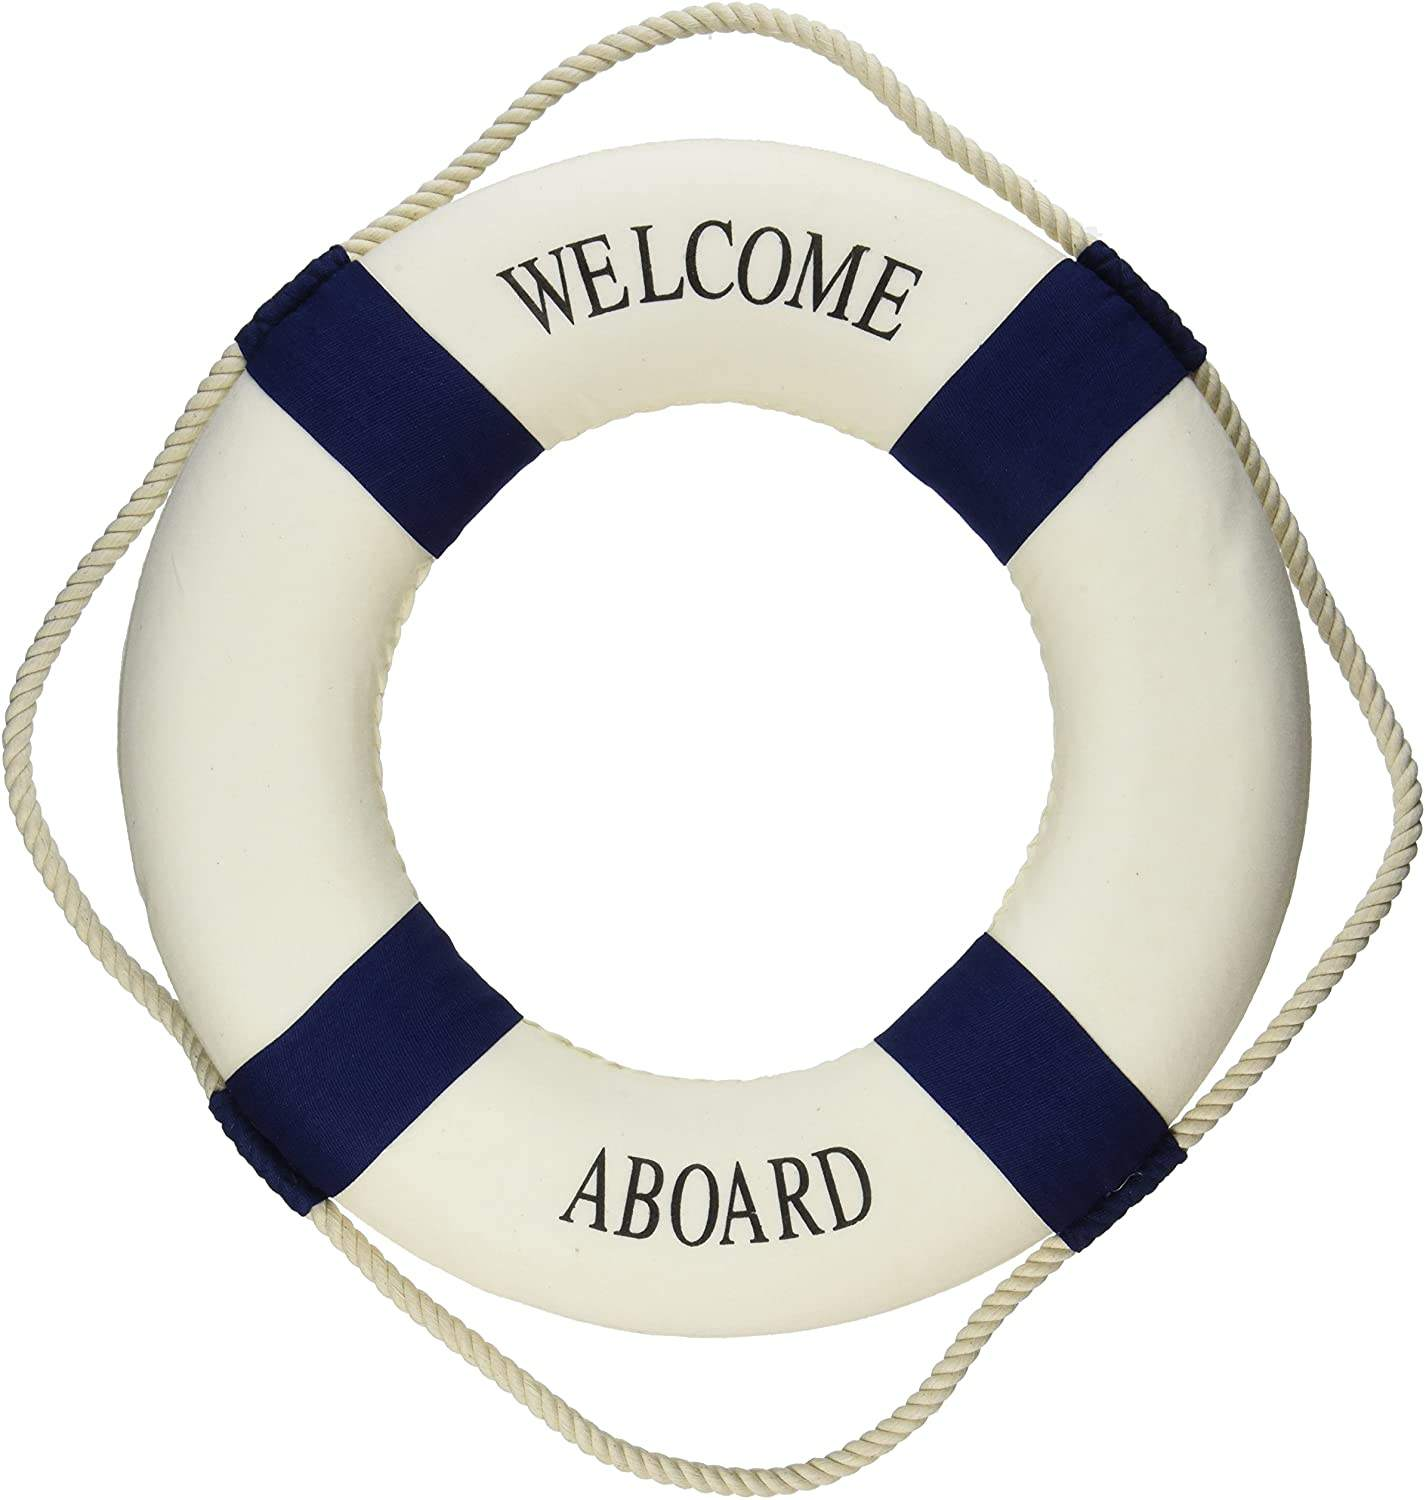 Nautical Life Ring Boat Wall Hanging Mediterranean Style Home Decoration